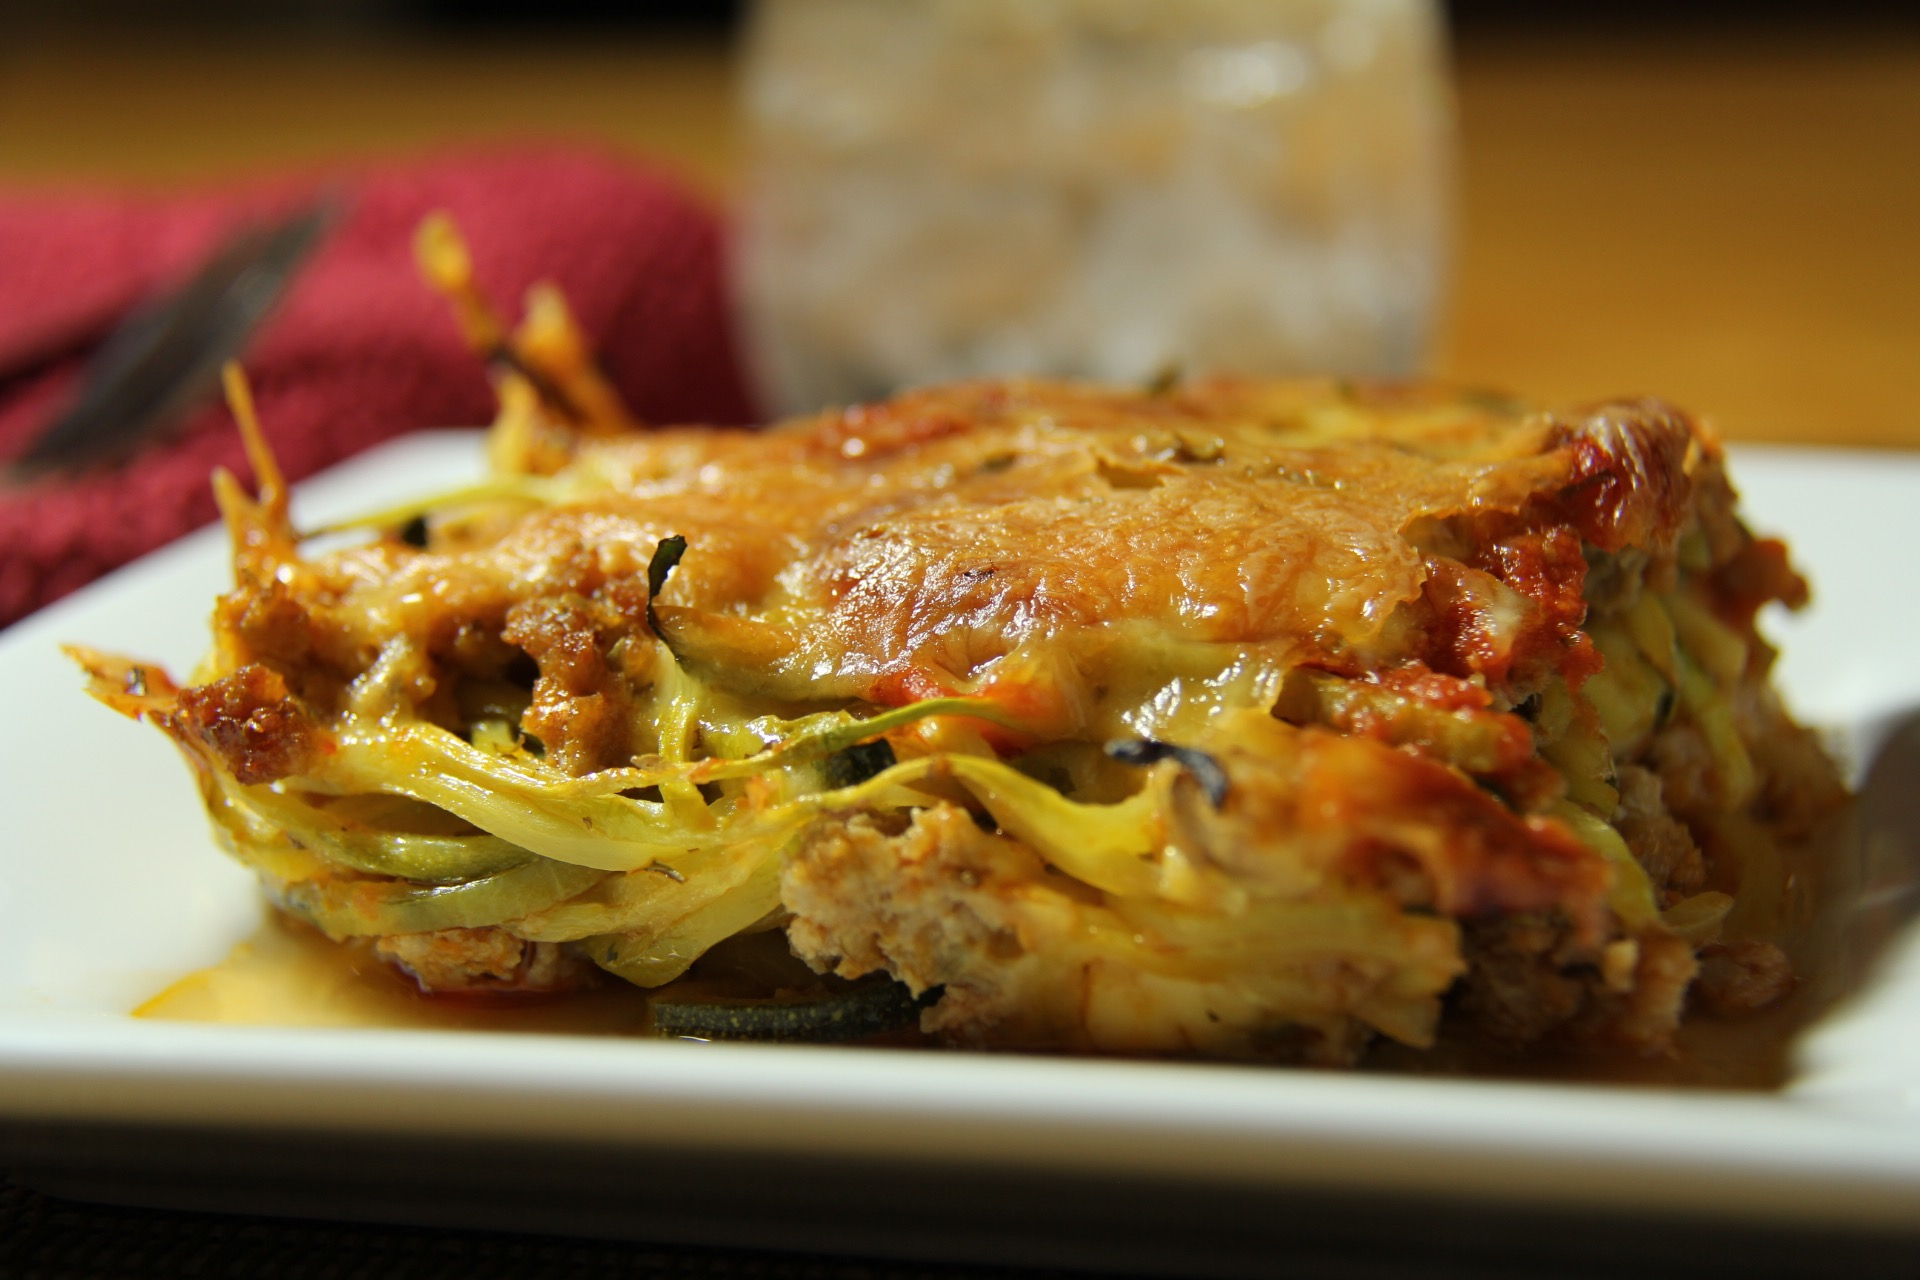 Baked Zuchini with Italian Sausage